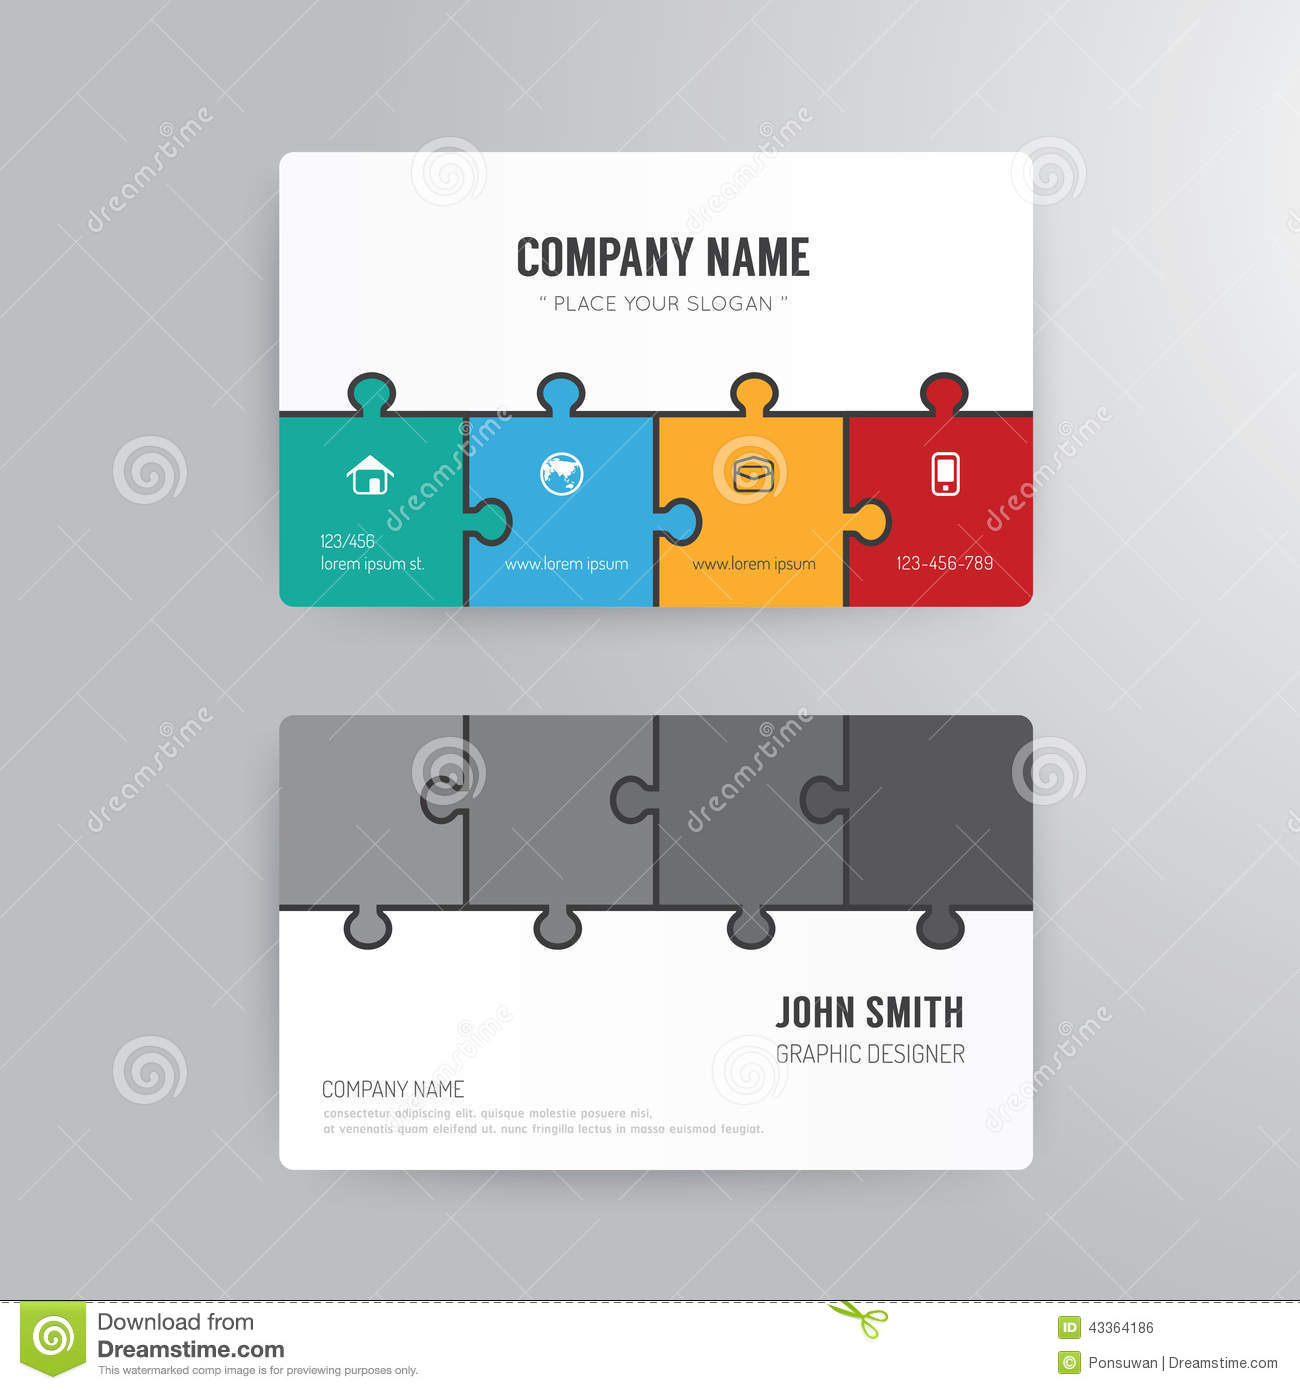 Business card template modern abstract jigsaw concept stock vector download business card template modern abstract jigsaw concept stock vector illustration of icon colourmoves